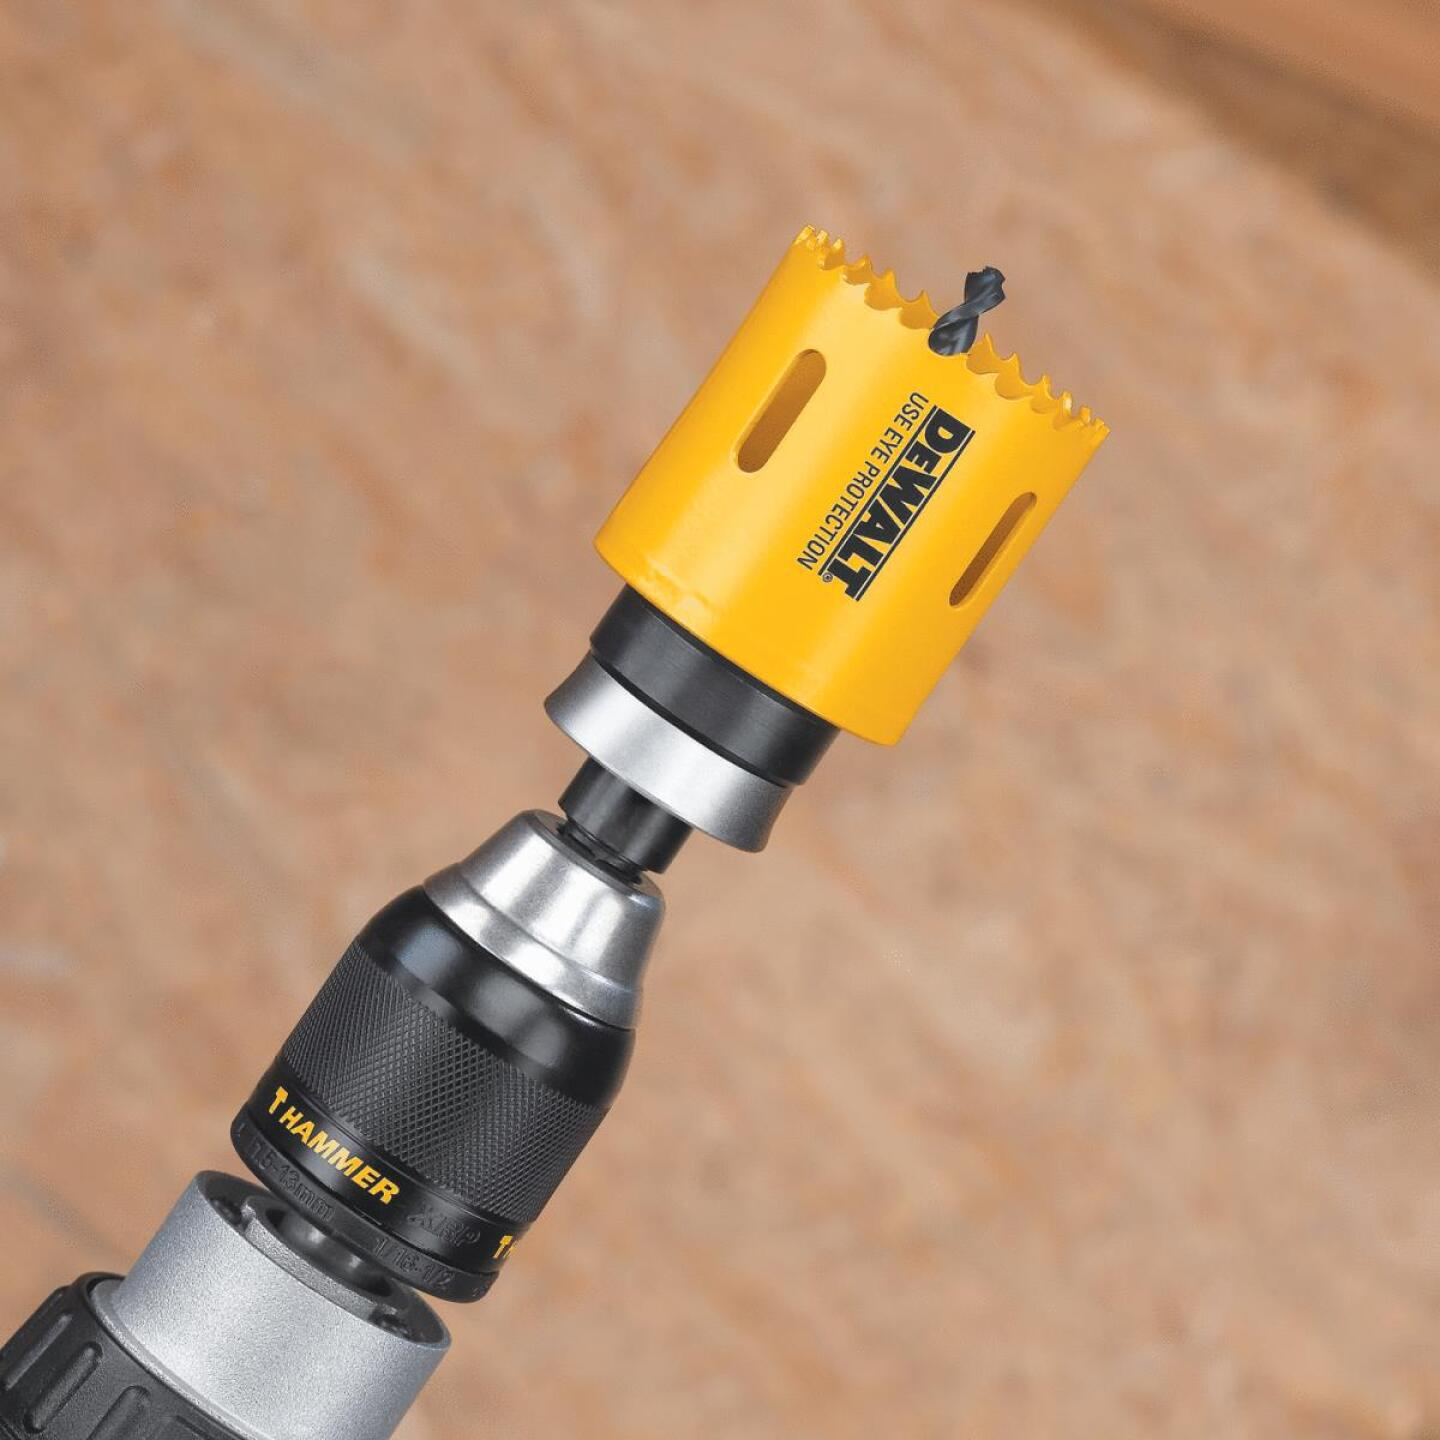 DeWalt 7/16 In. Hex Shank Hole Saw Mandrel Fits Hole Saws Fits Hole Saws 1-1/4 In. to 6 In. Image 3